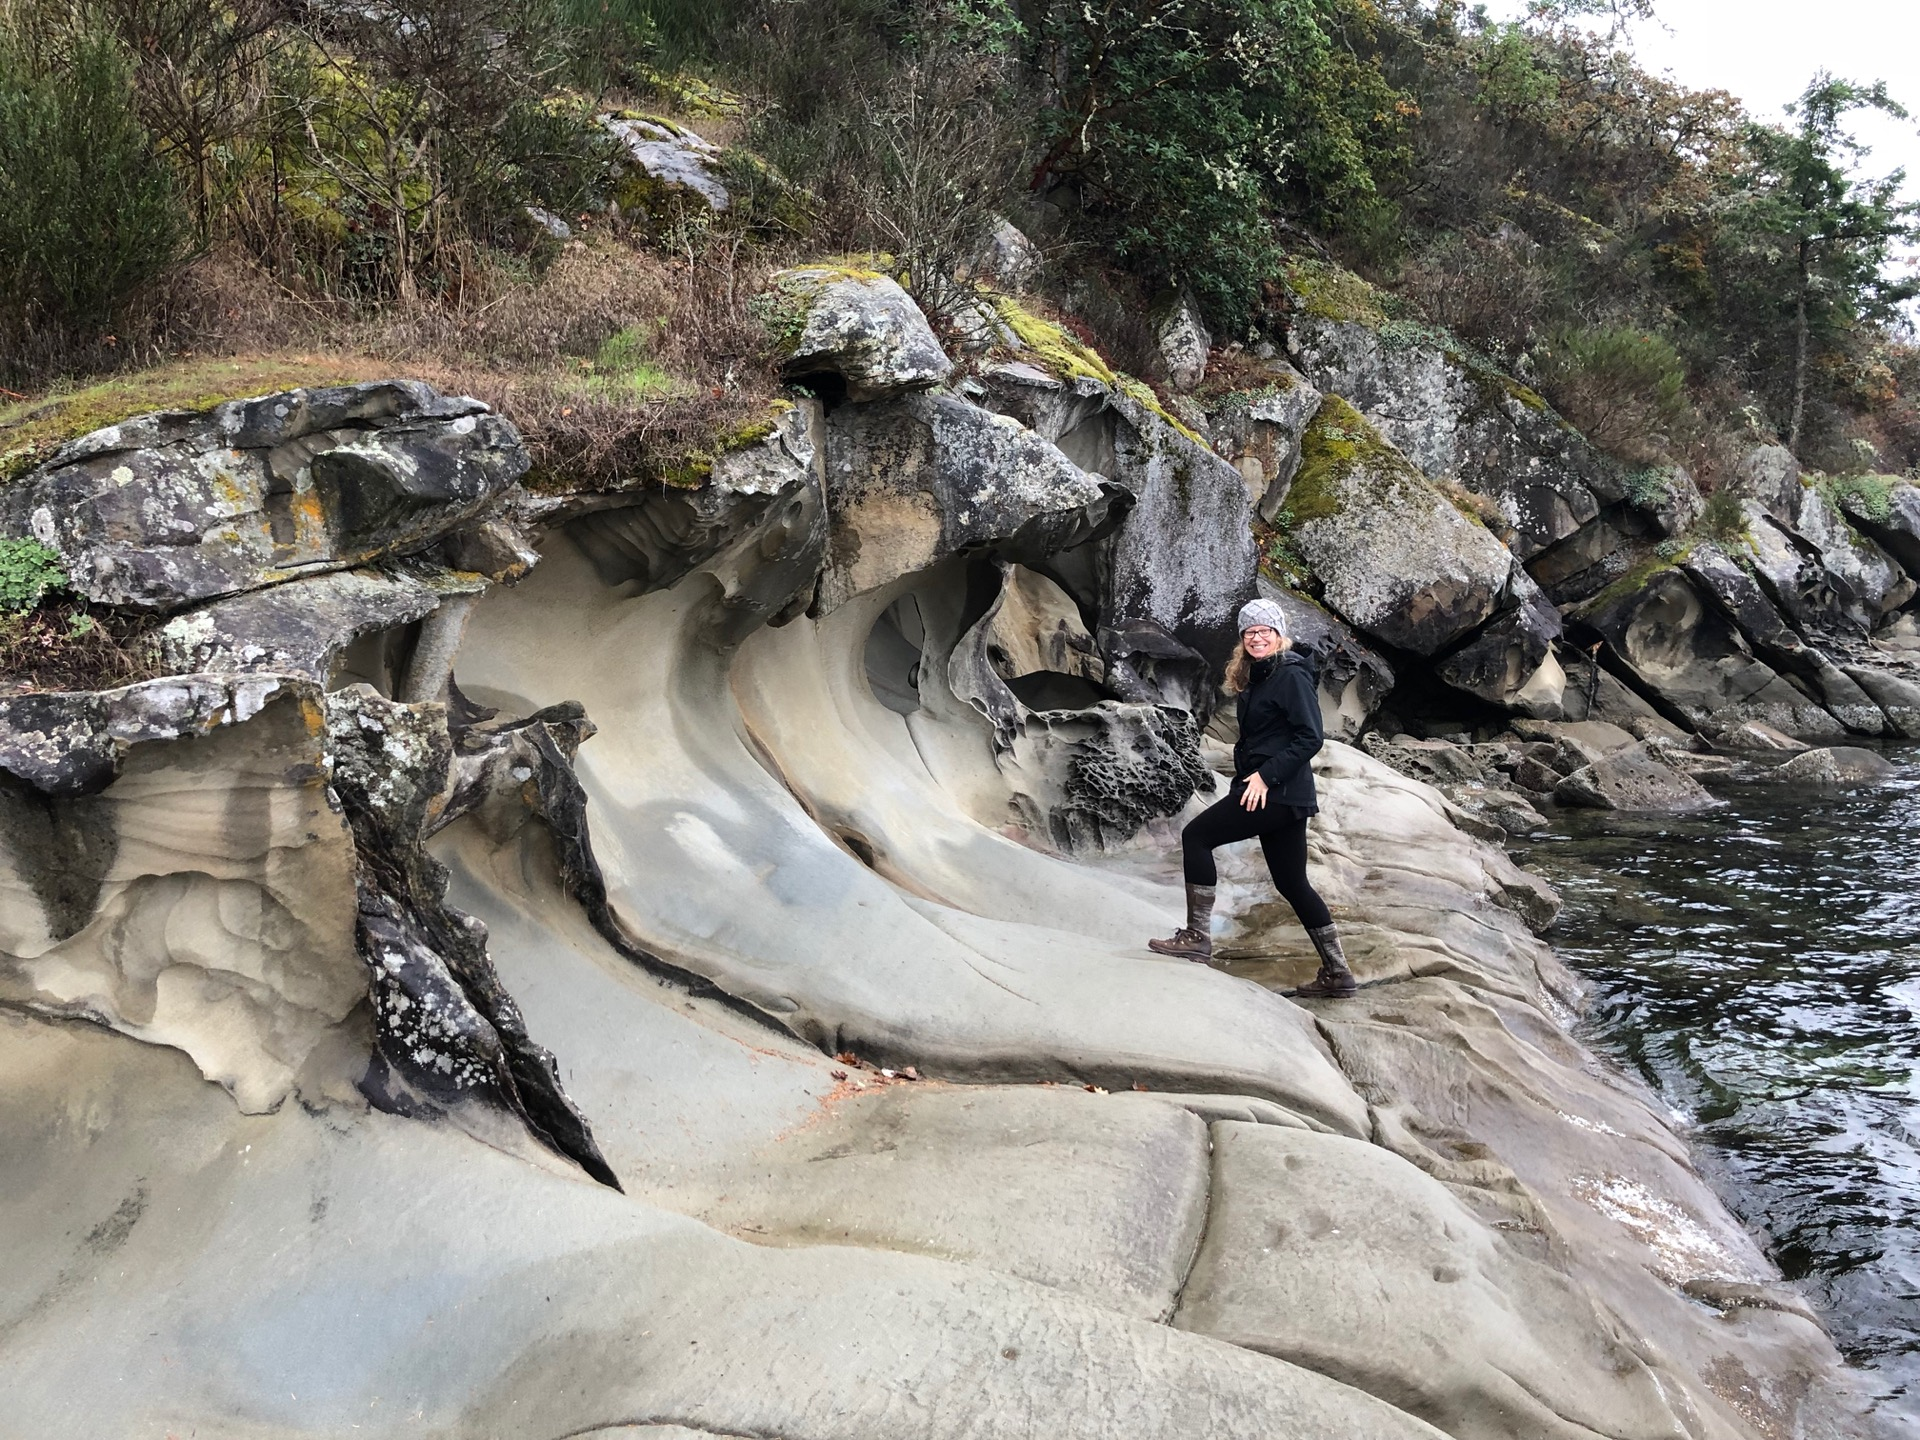 At the end of one of the roads near our place, there is a sandstone cave structure that the waves have carved. It's very cool.